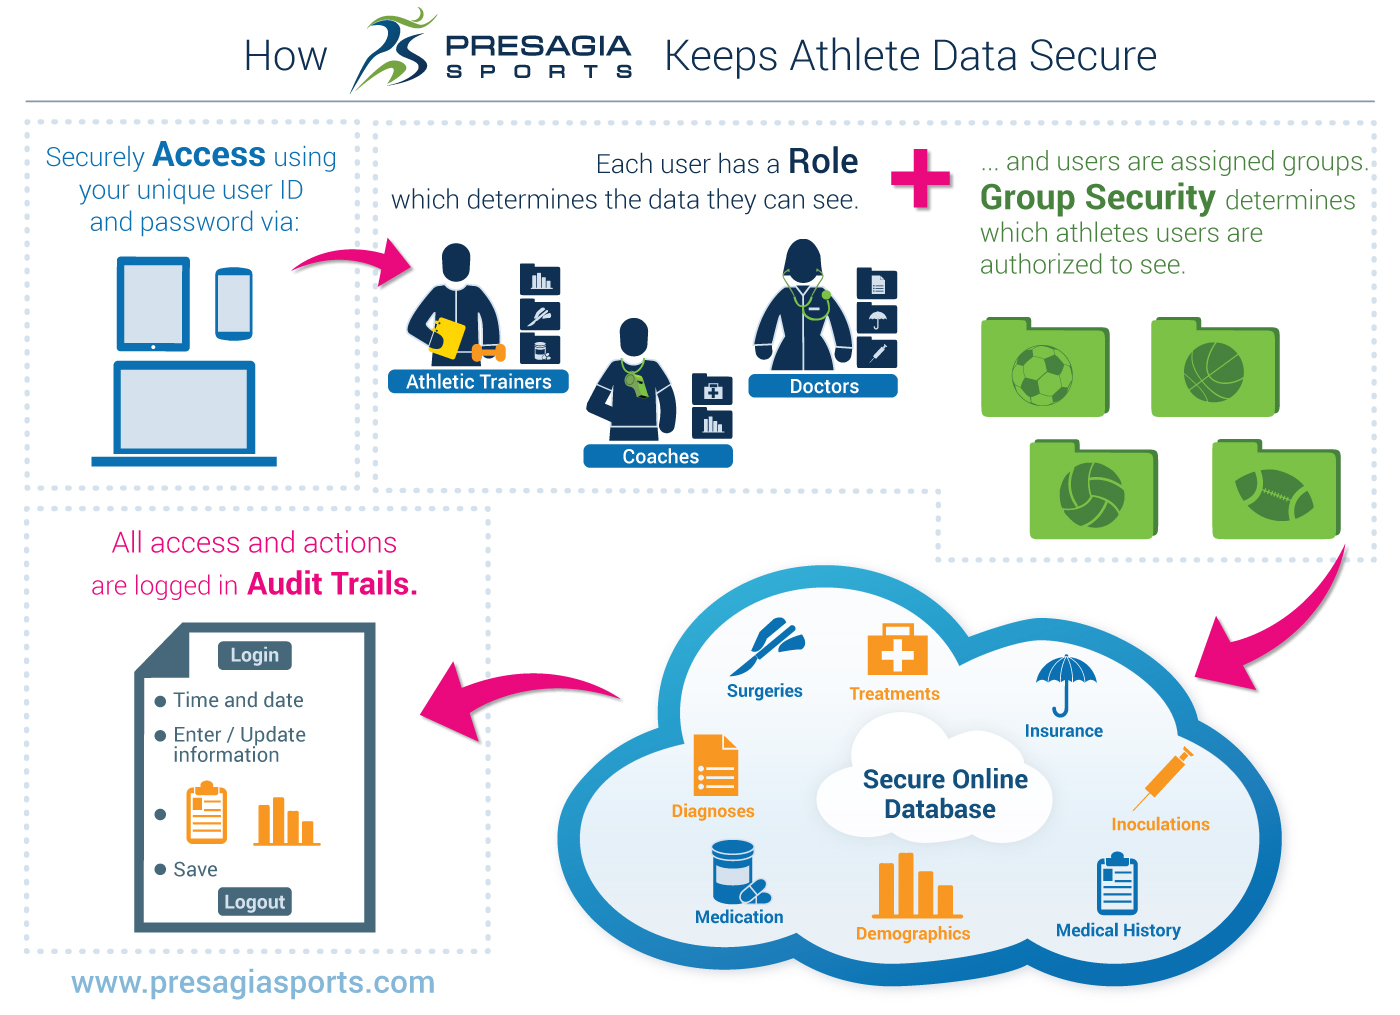 How Presagia Sports Keeps Athlete Data Secure